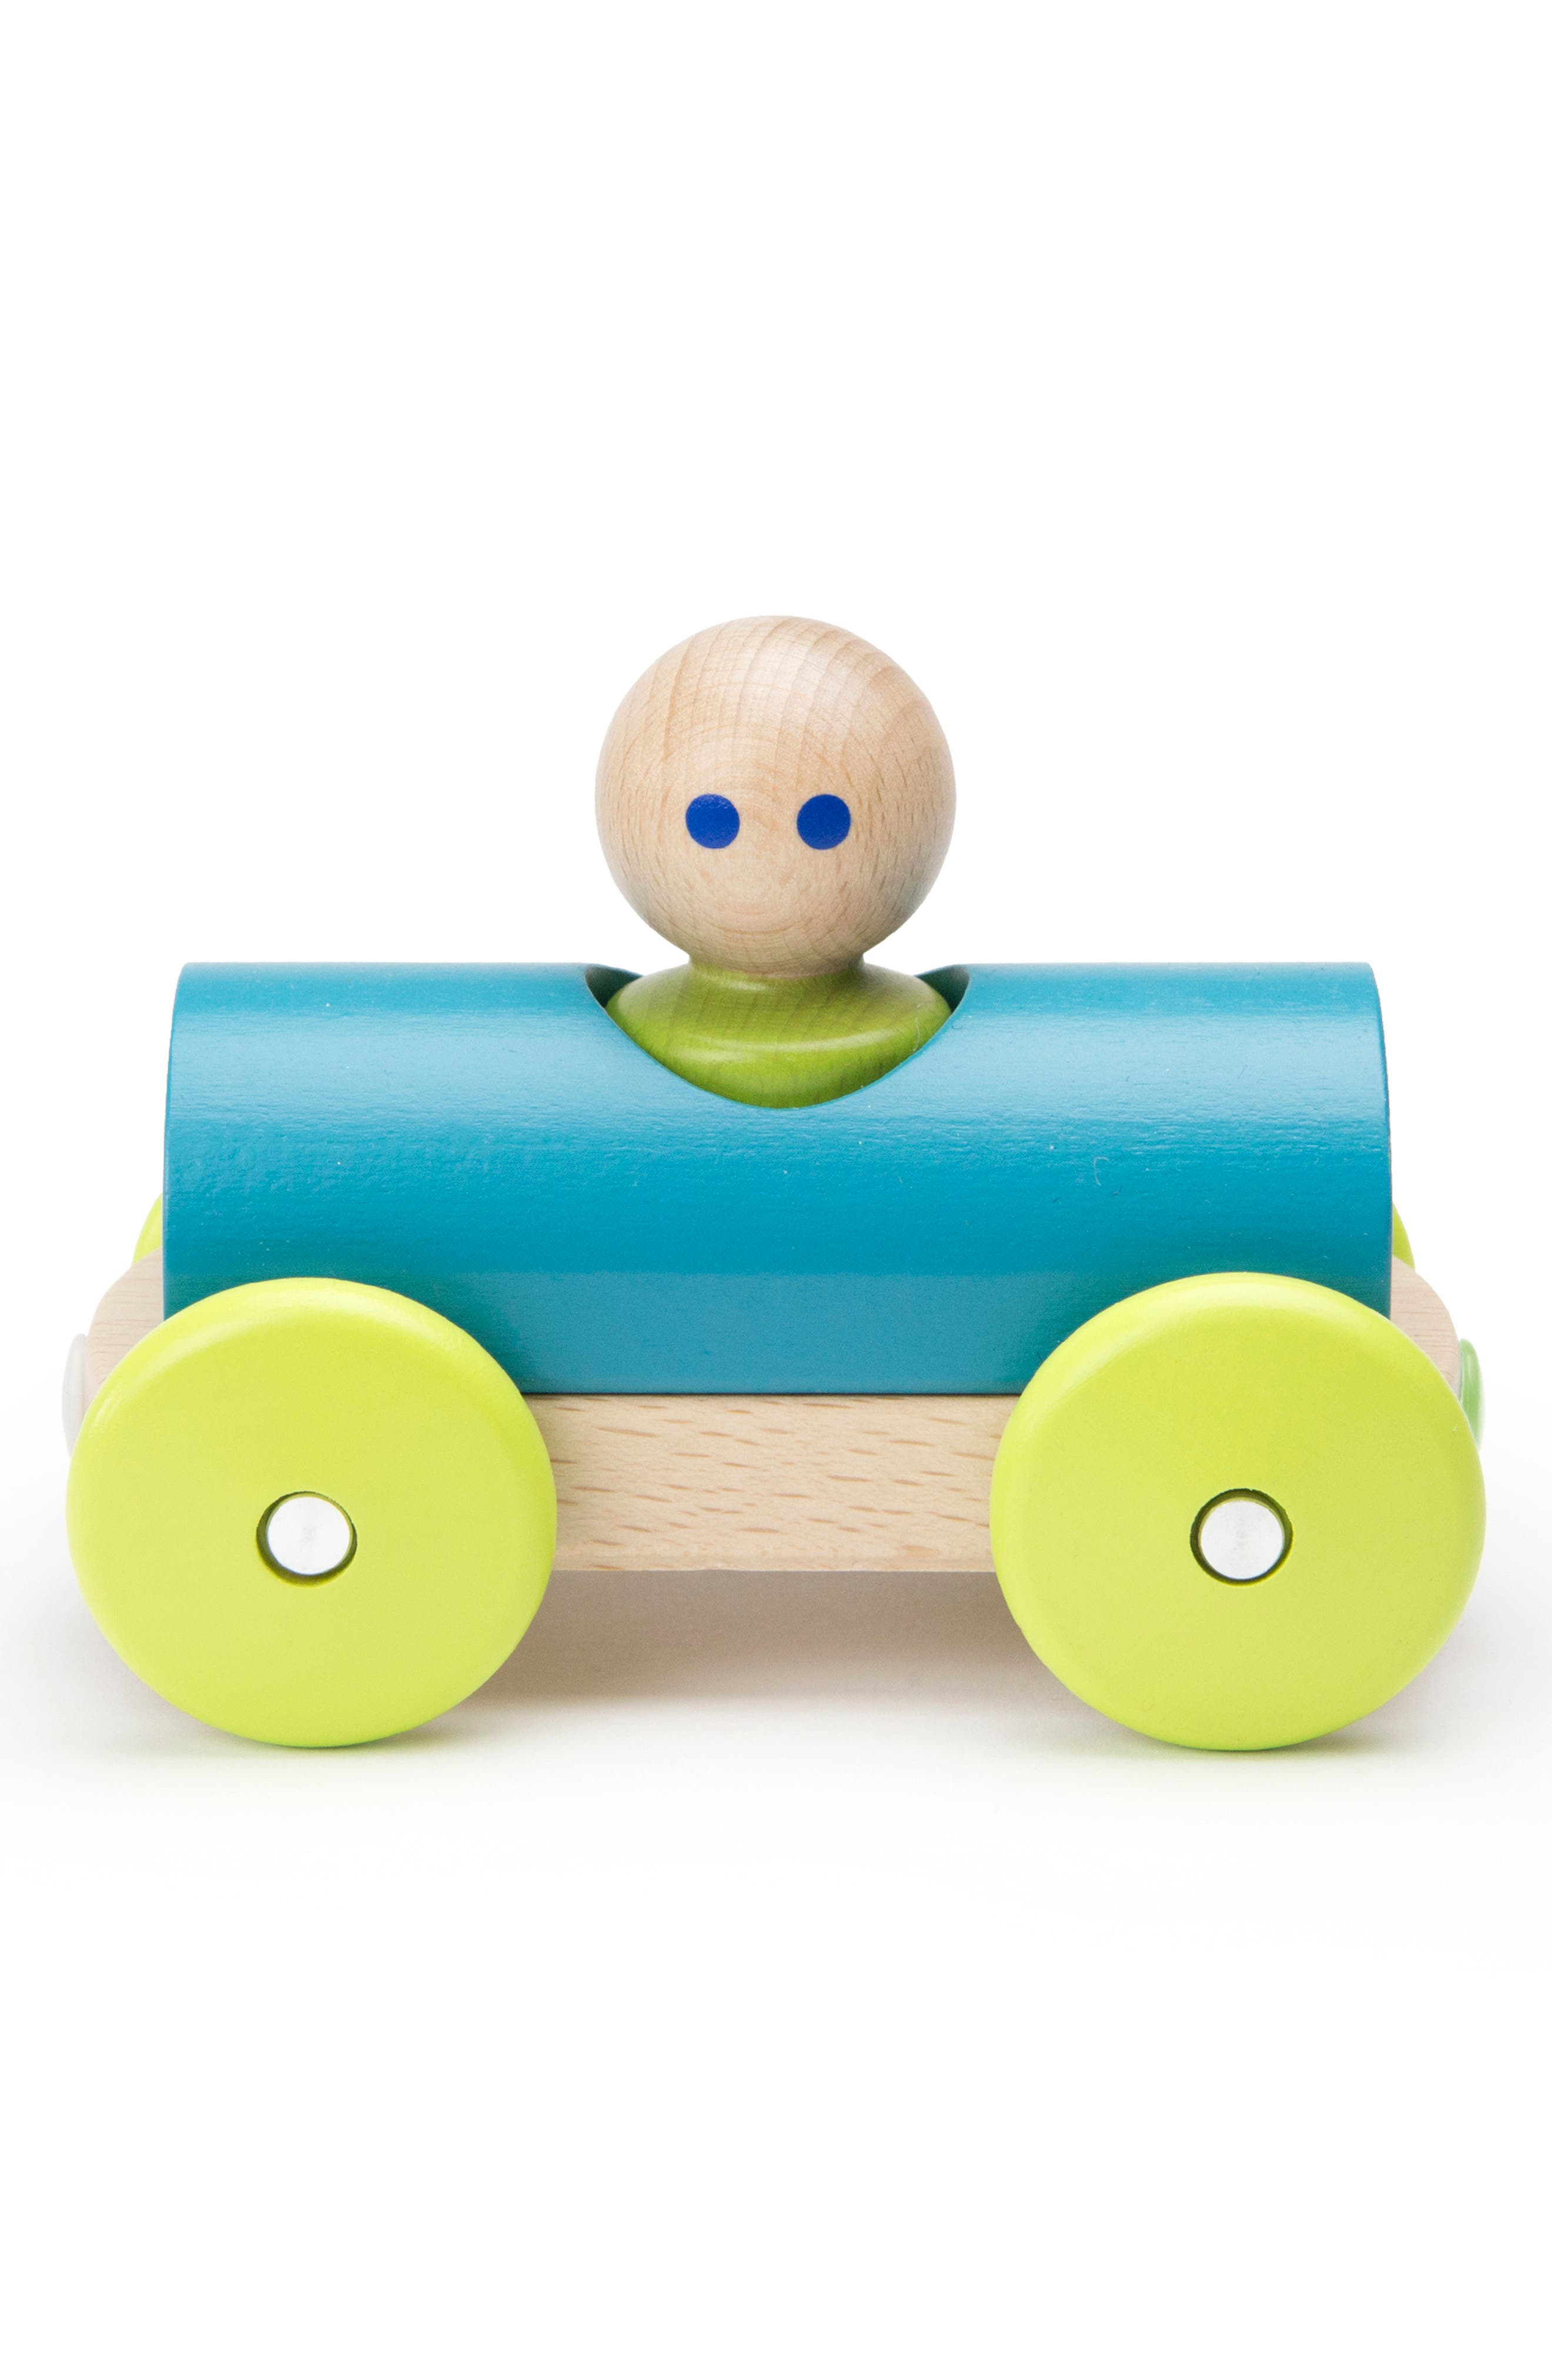 Half Pipe Magnetic Racer Toy,                             Alternate thumbnail 8, color,                             RAINBOW